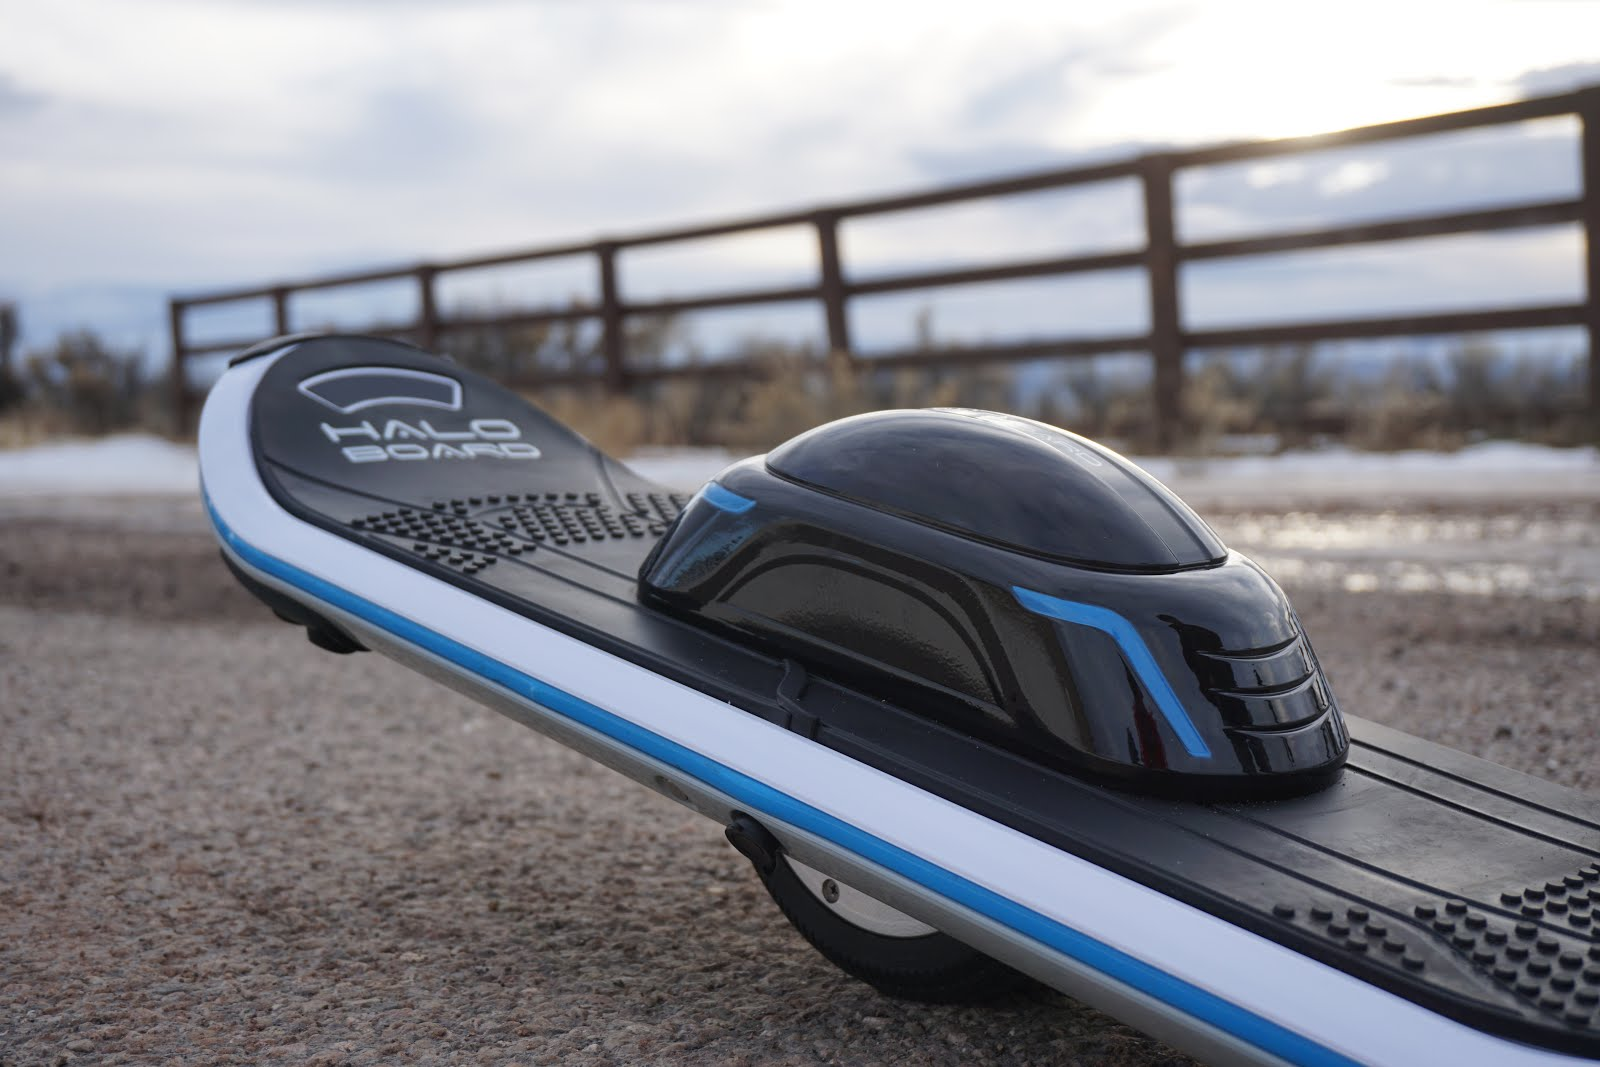 Halo Board The Electric Gyroscopic One Wheeled Skateboard That Is Like A Mix Between Hoverboard And Unicylce